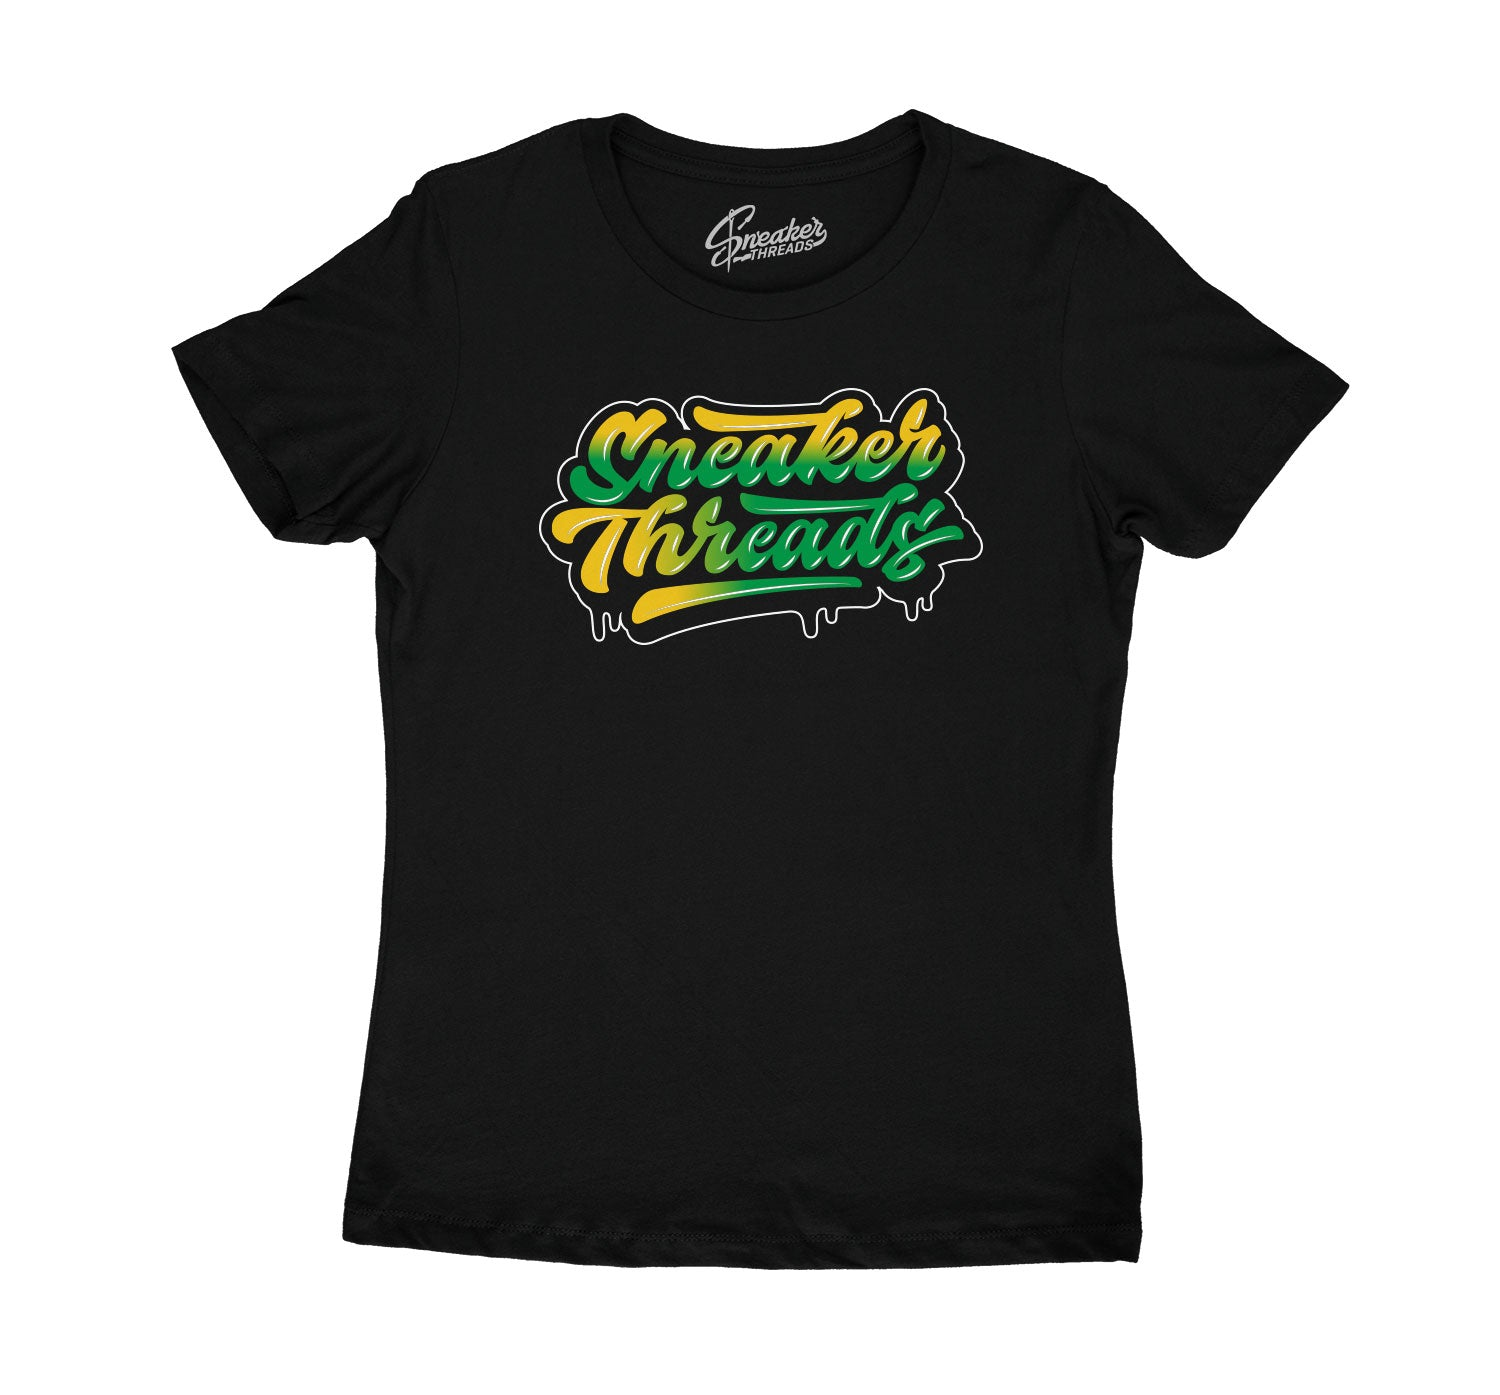 Womens sneaker tees match retro 10s seattle shoes.